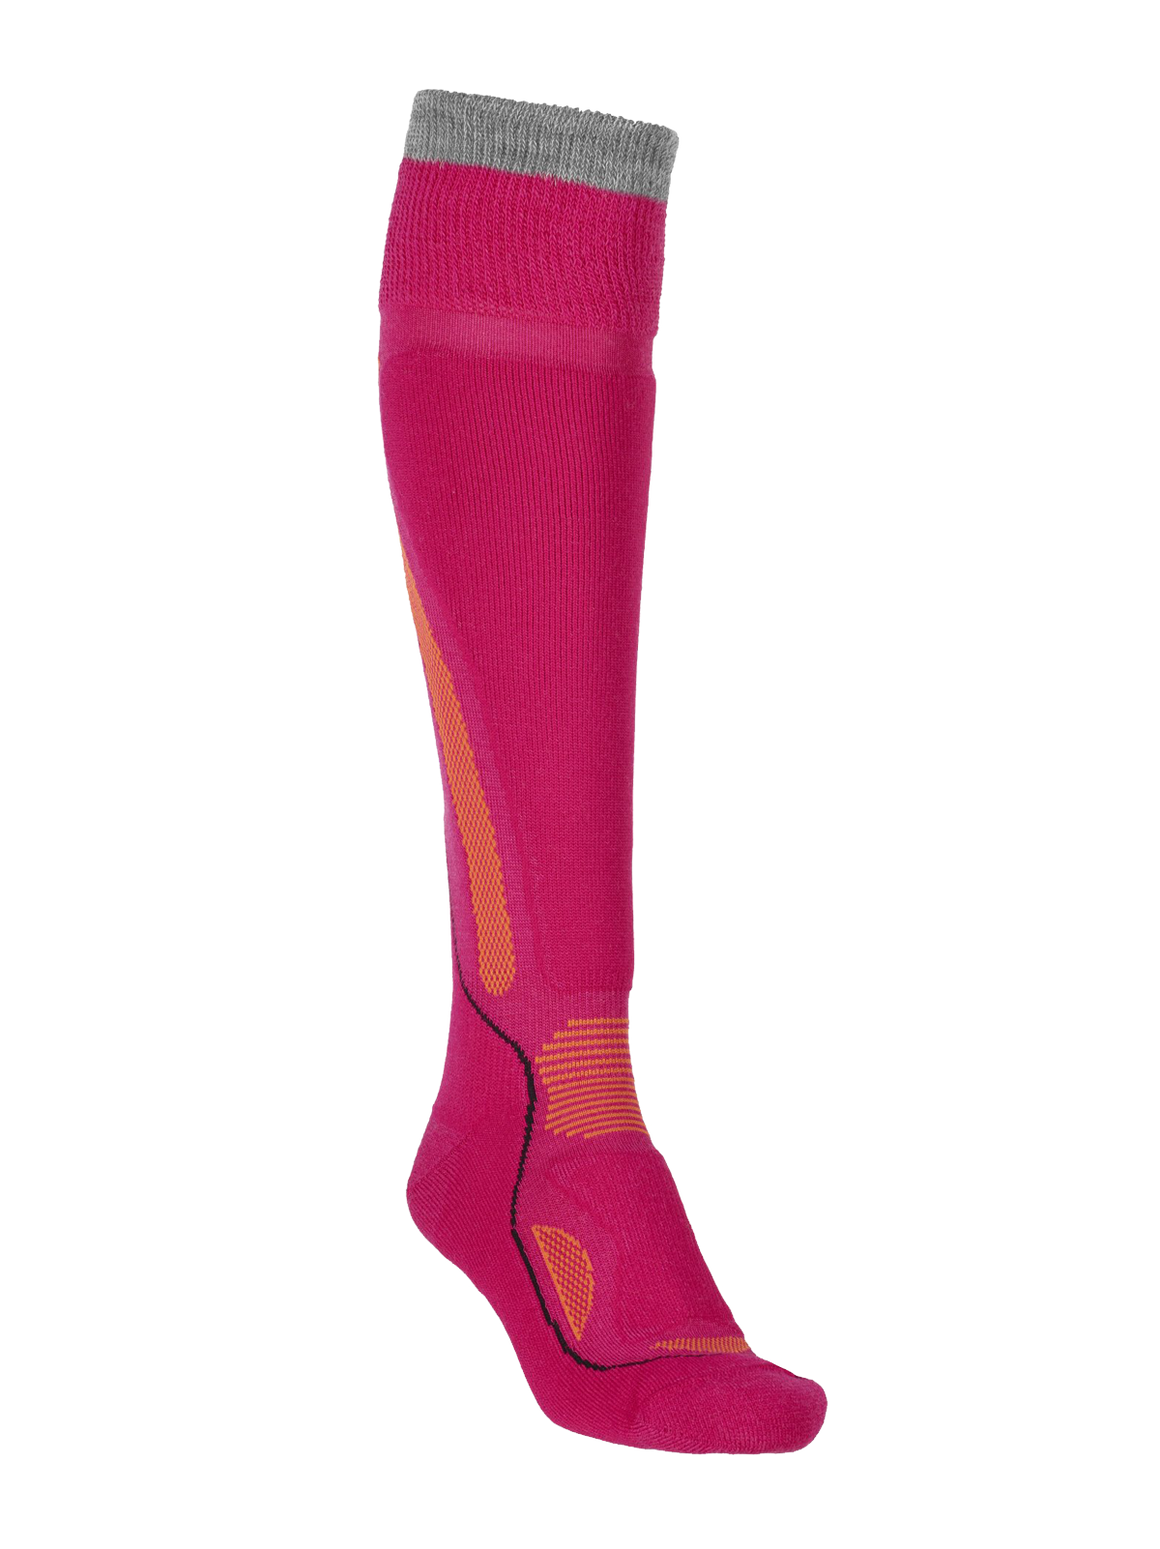 Merino Ski & Snowboard Socks LADIES